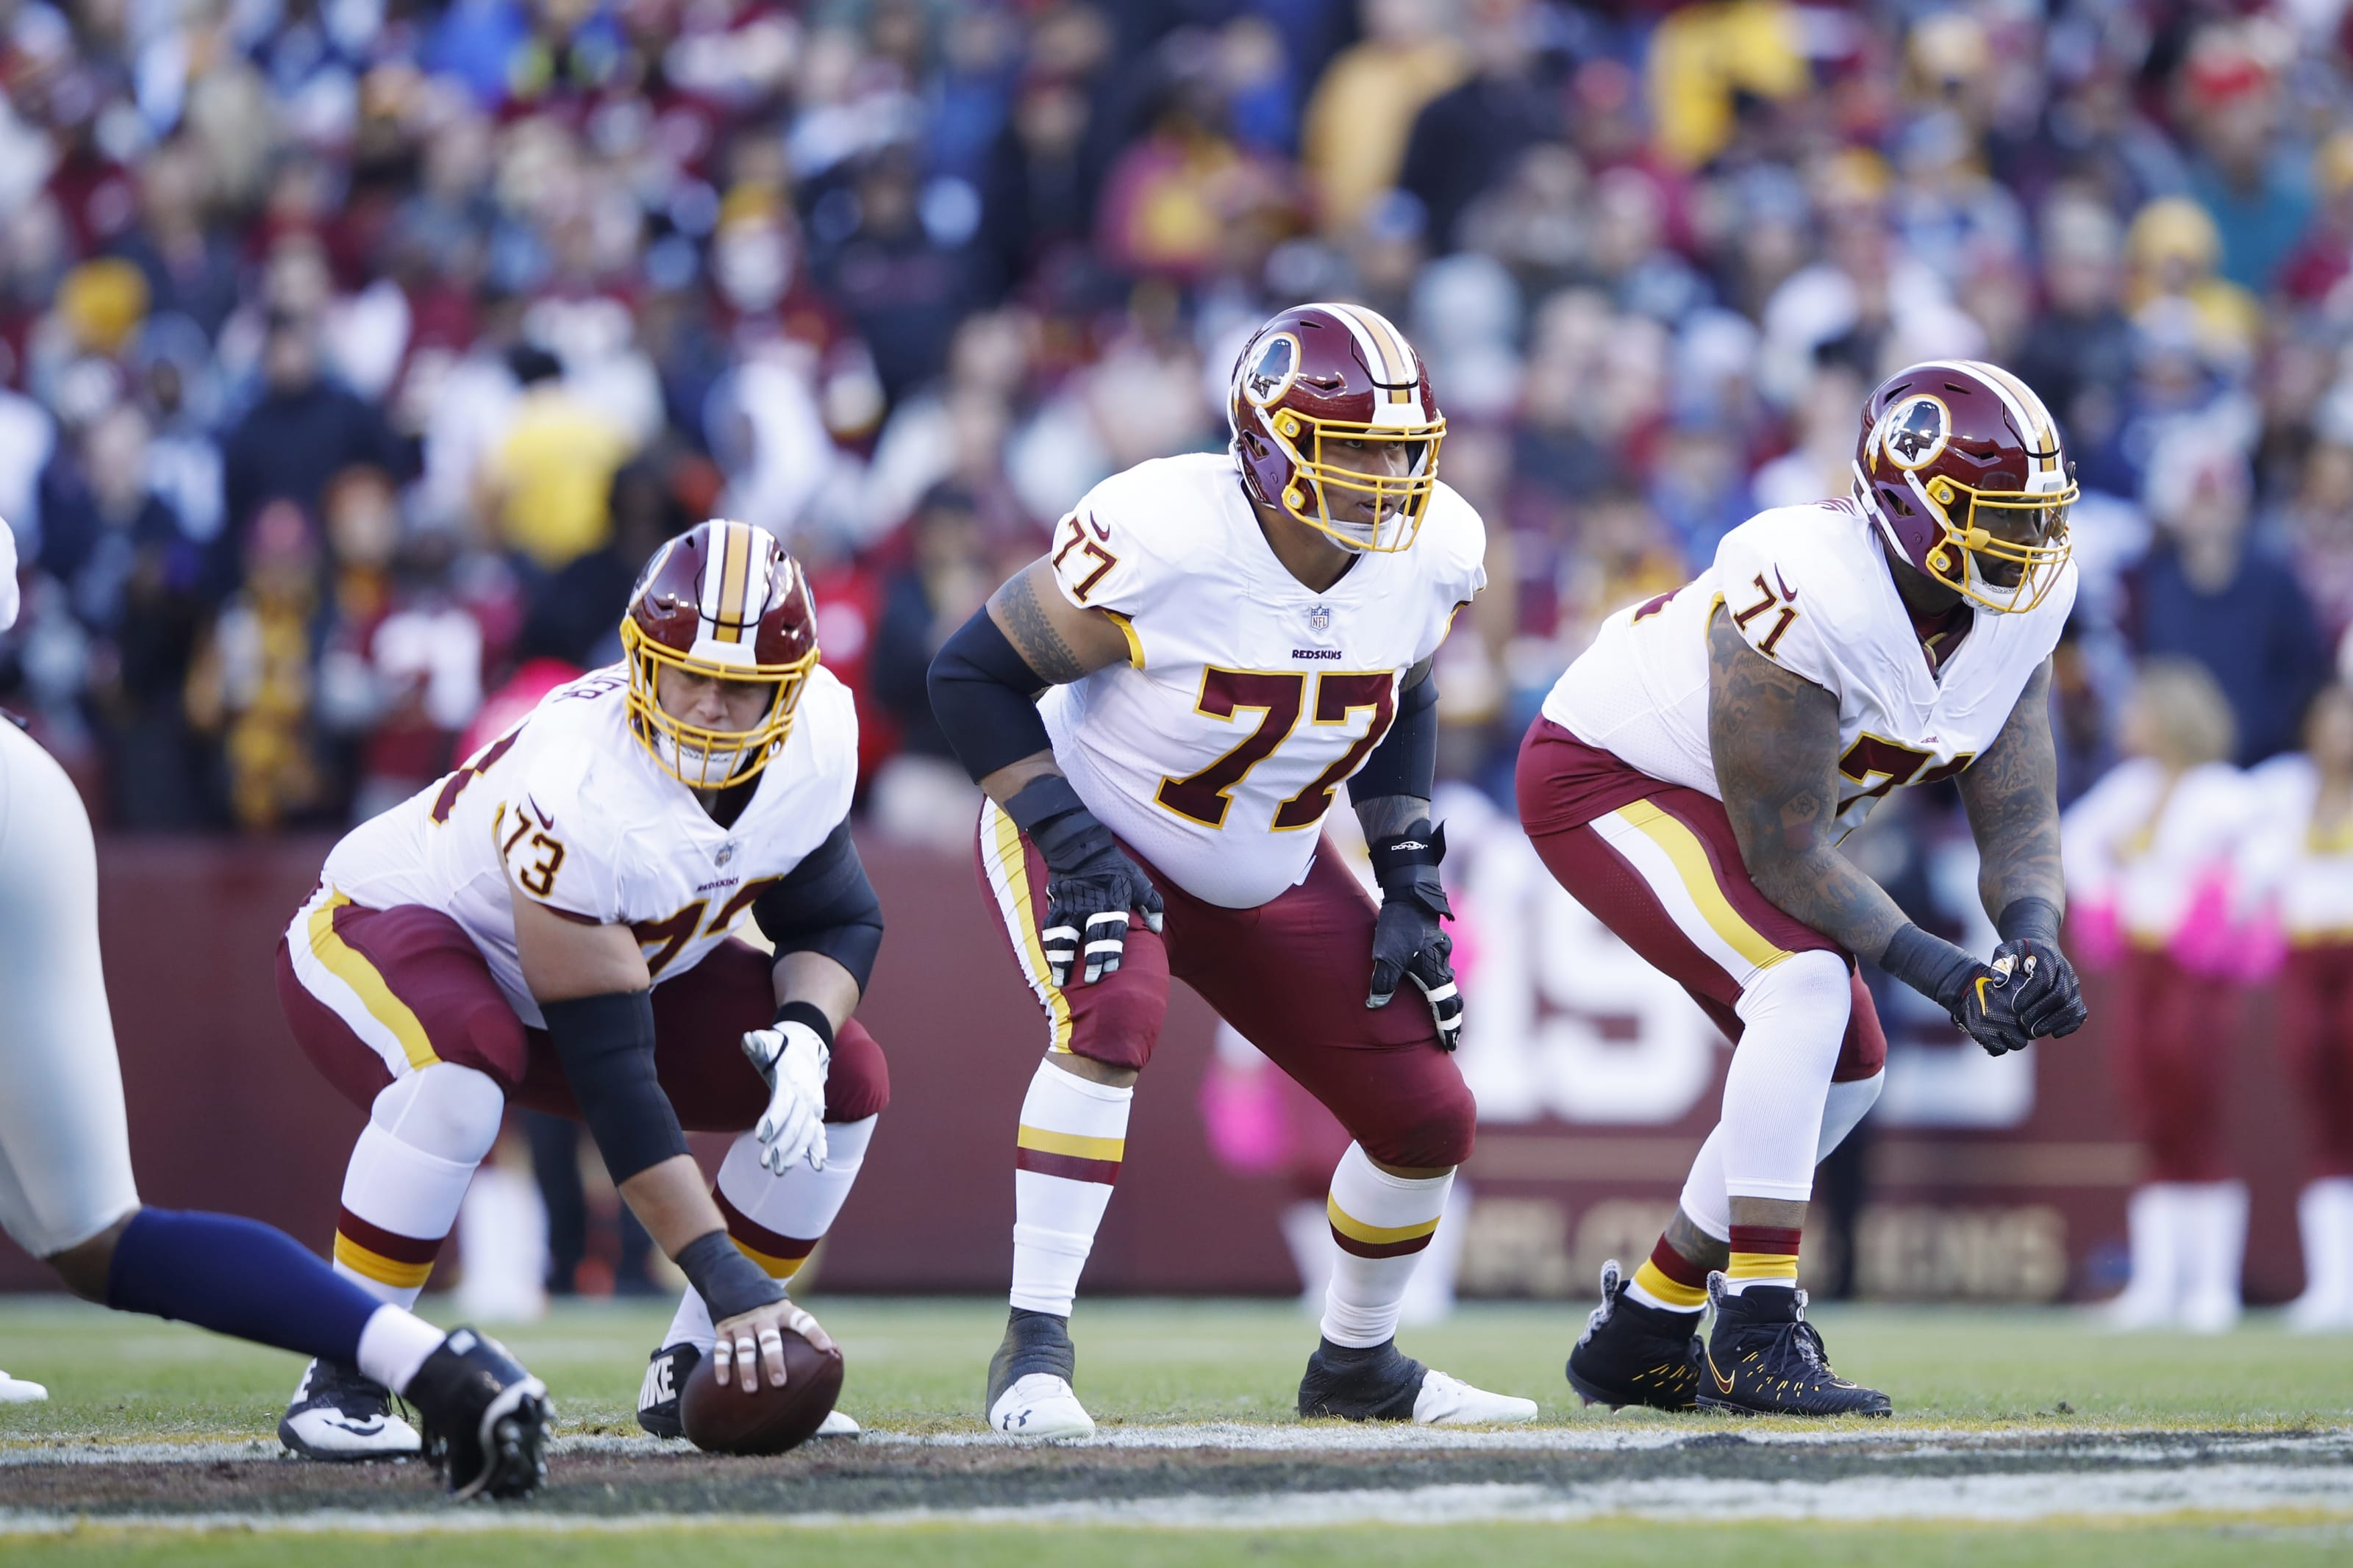 Trent Williams of the Washington Redskins could be a perfect fit for Tom Brady, (Photo by Joe Robbins/Getty Images)